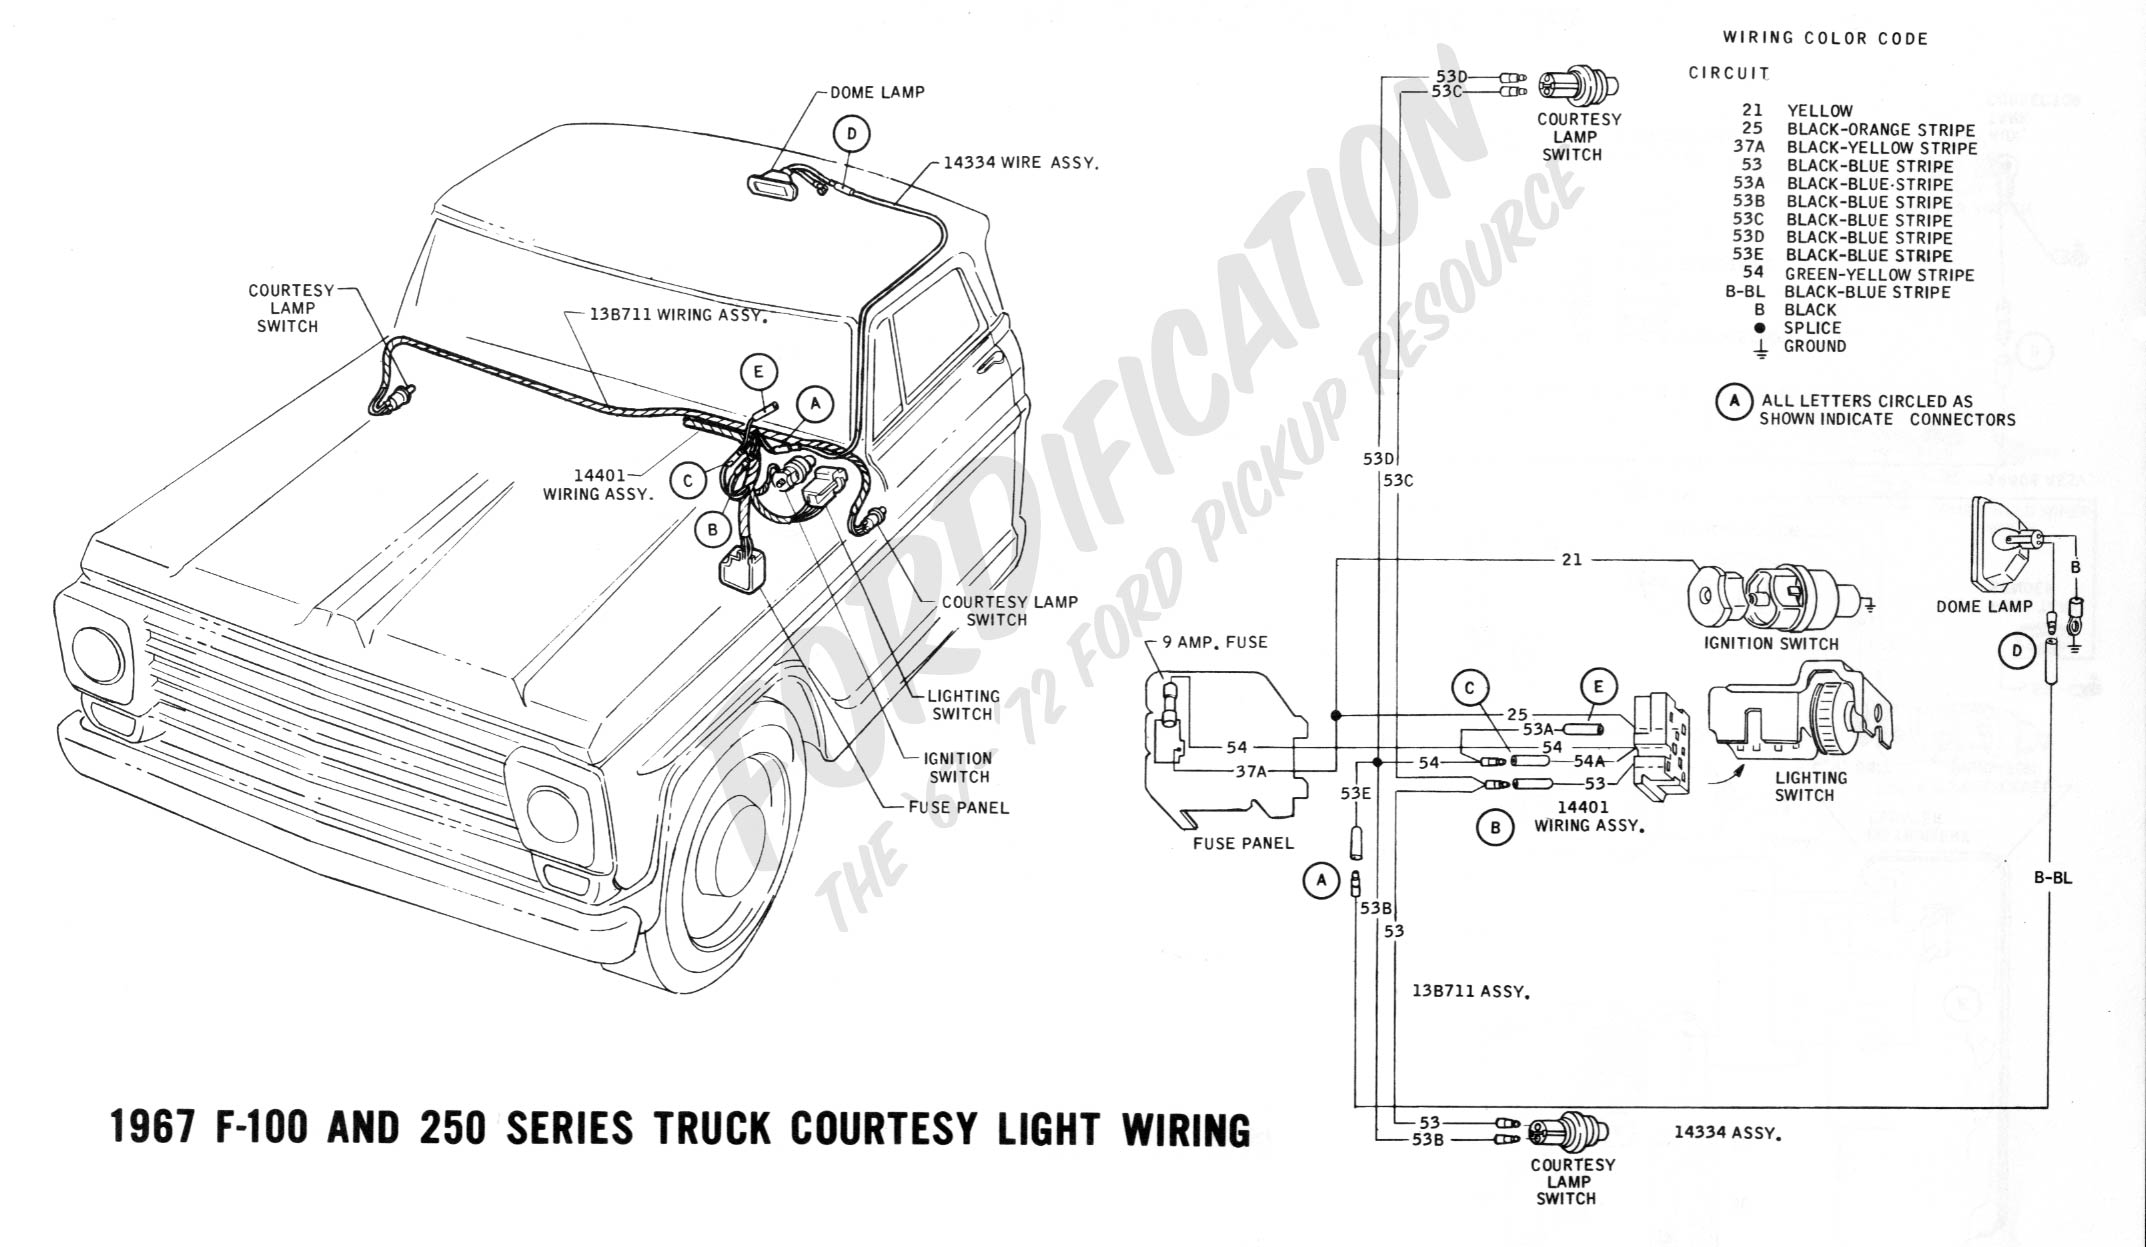 Dimmer Switch Wiring Diagram 70 Ford Pickup Trusted Diagrams 1996 Freightliner Headlight Truck Technical Drawings And Schematics Section H Neutral Safety